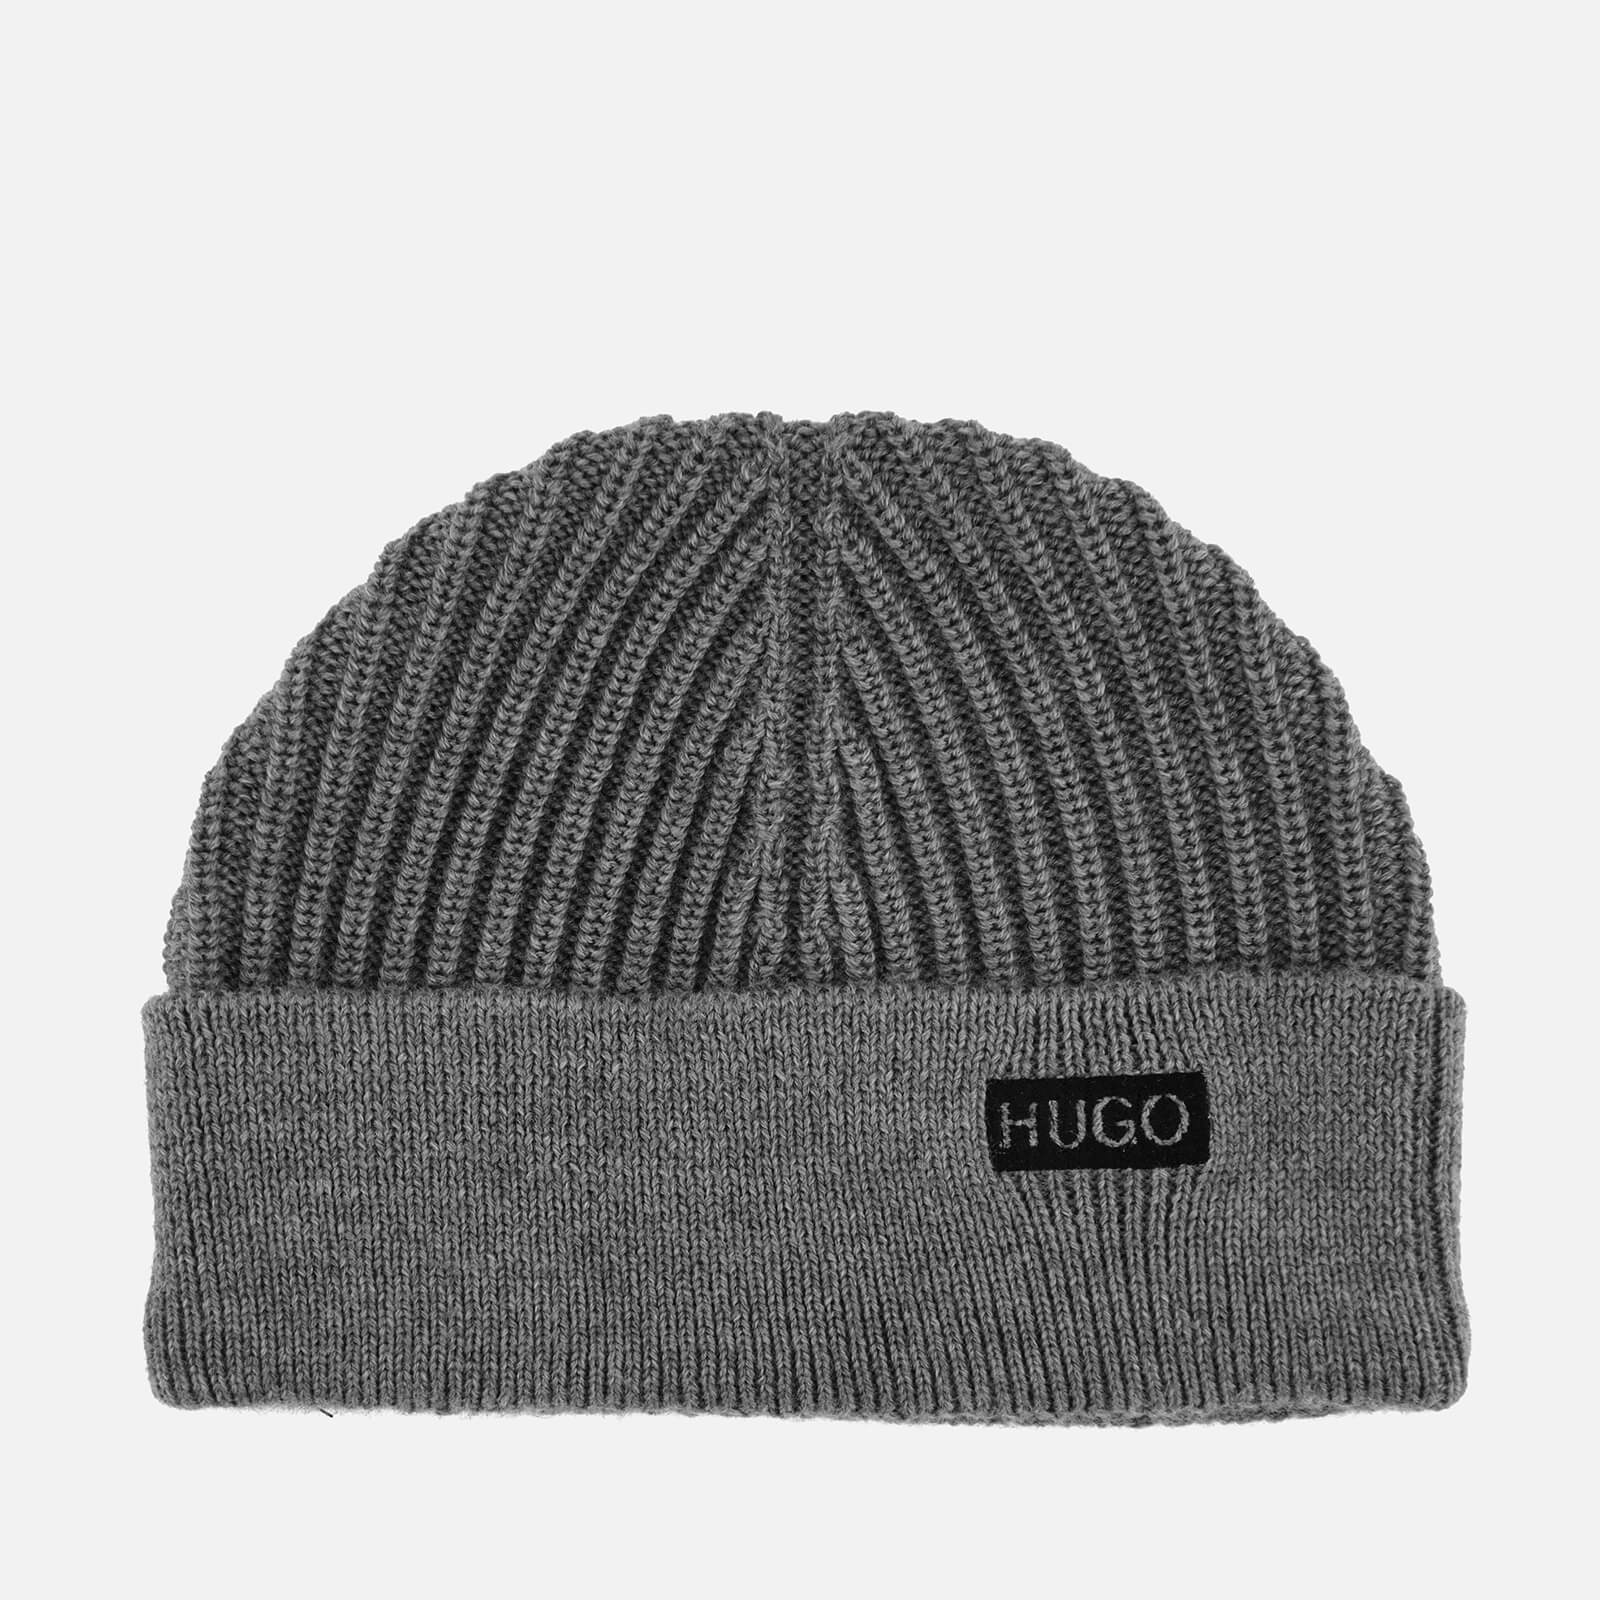 6a01bb477d383 HUGO Men s Xianno Wool Knitted Beanie Hat - Grey - Free UK Delivery over £50